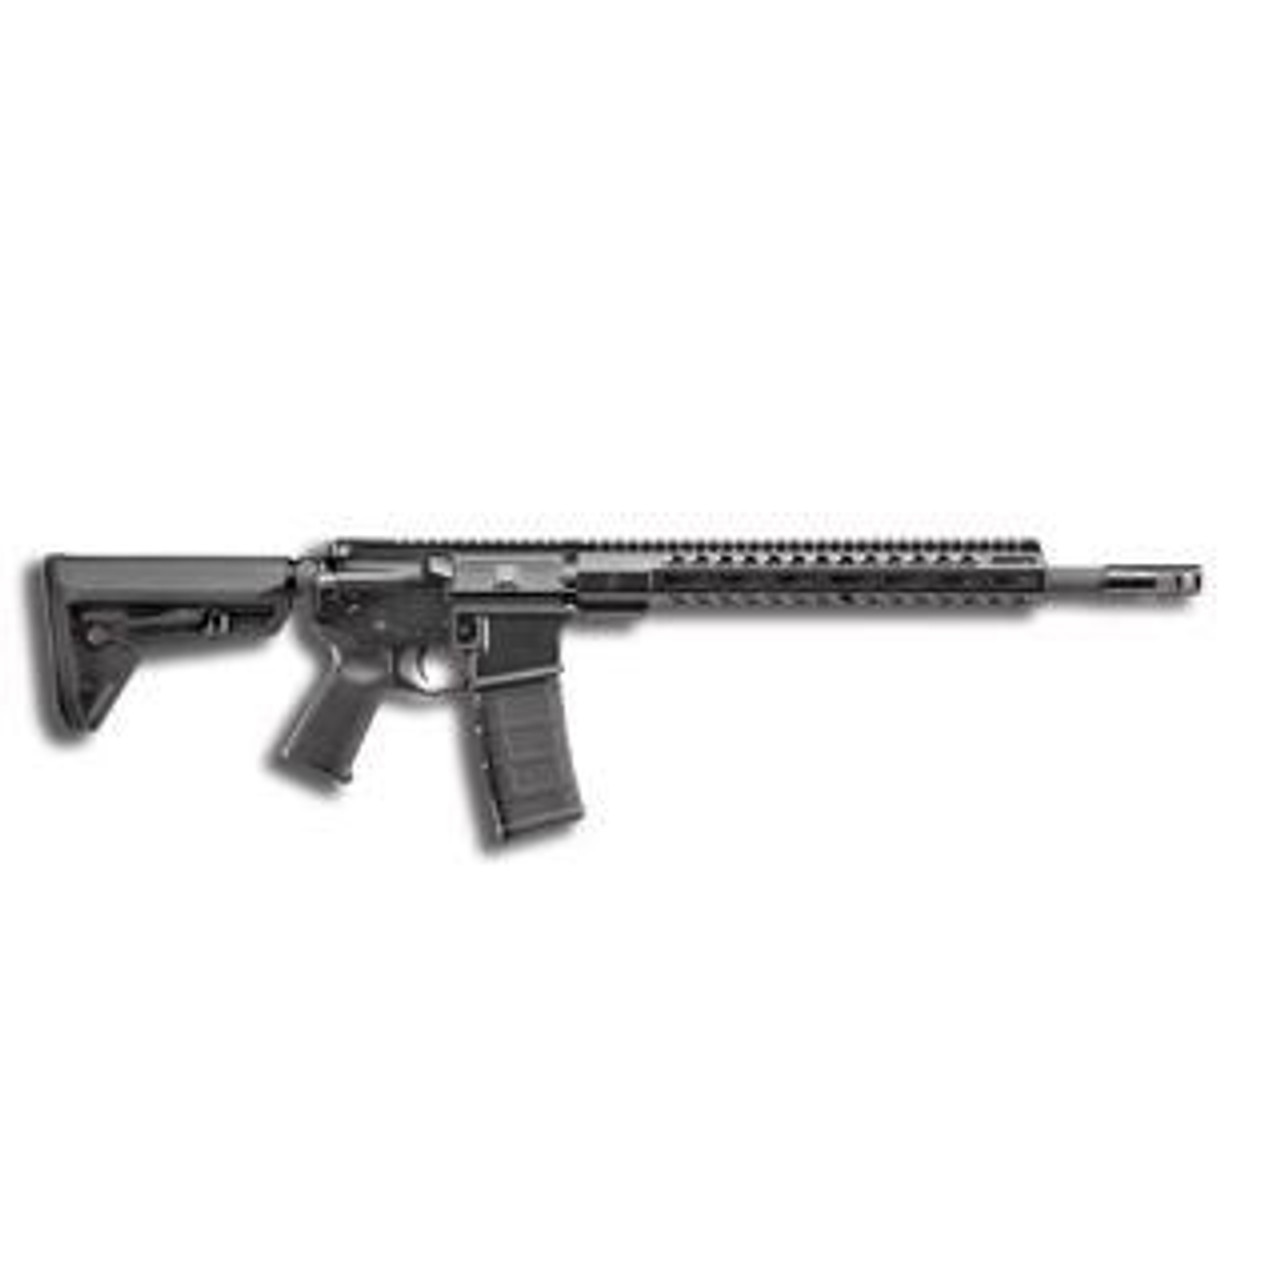 CHECK ME FNH FN15 Tactical Carbine II CALIFORNIA LEGAL .300Blackout